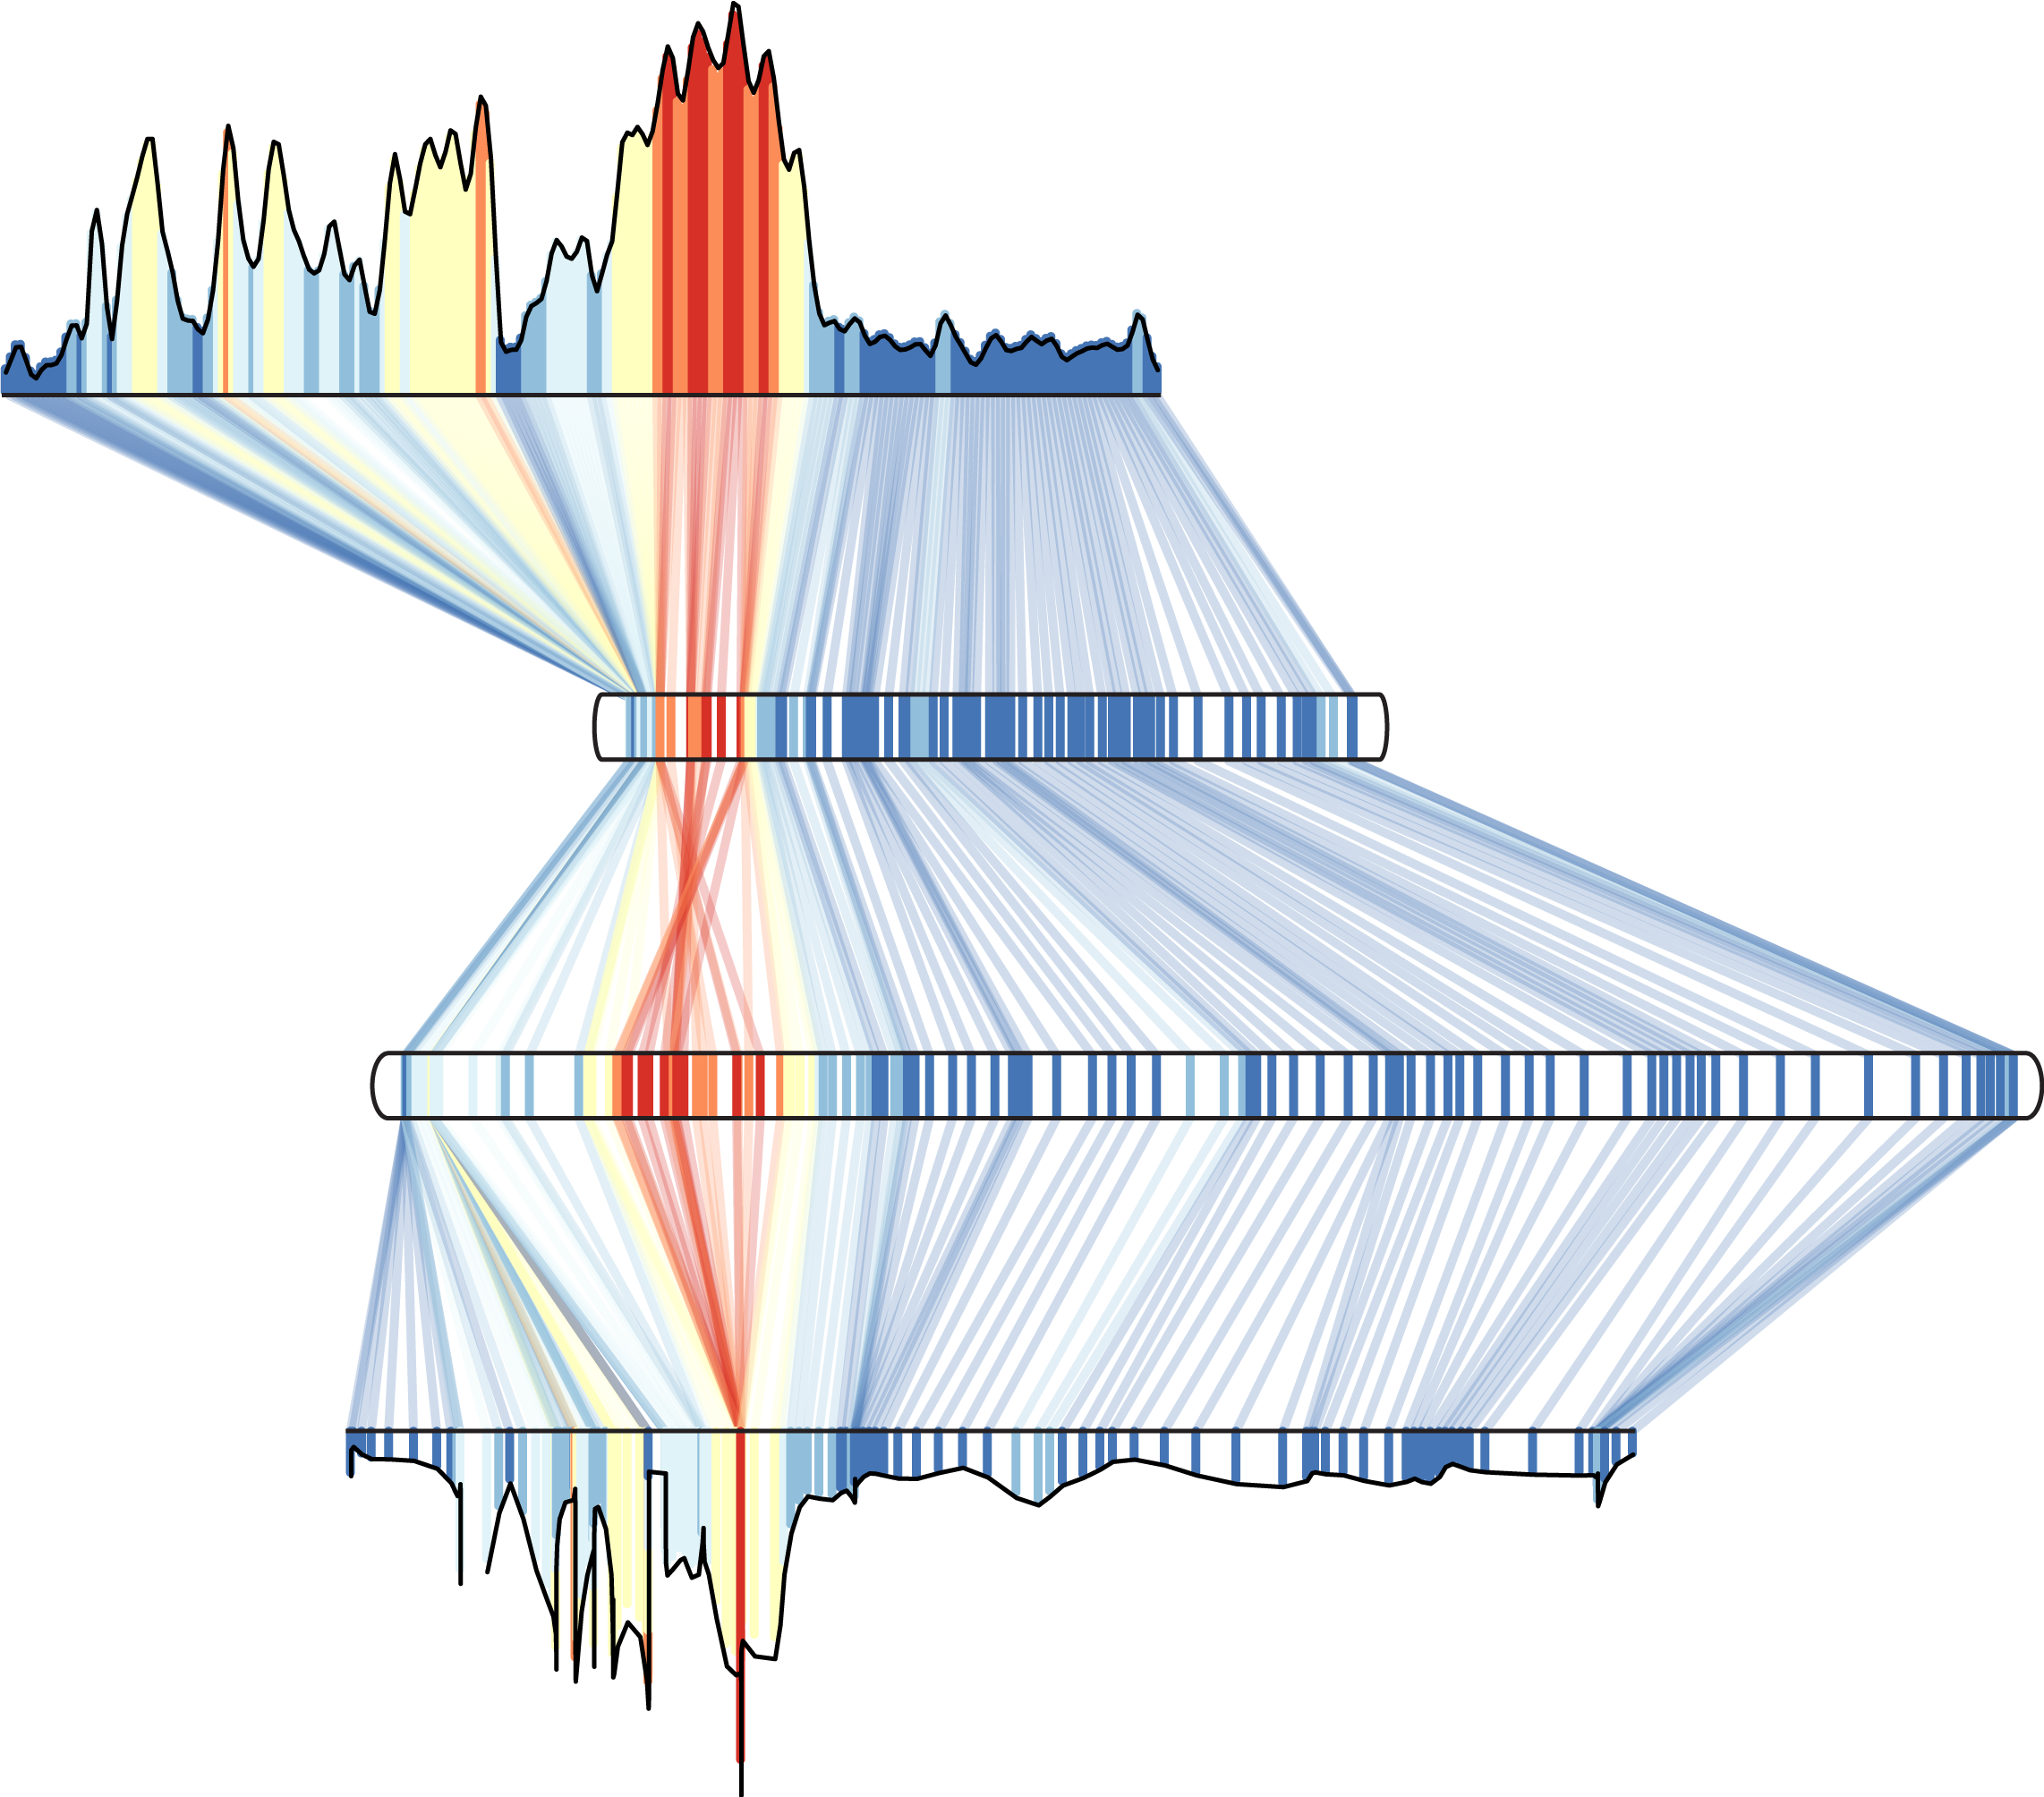 An genome scan of genetic differentiation (FST) shows different architectures depending on the map used. Top is the physical map (measured in base pairs). The Y axis and coloration depict FST. The next three rows are genetic maps (measured in genetic distance) from individuals homozygous or heterozygous for a chromosomal inversion.